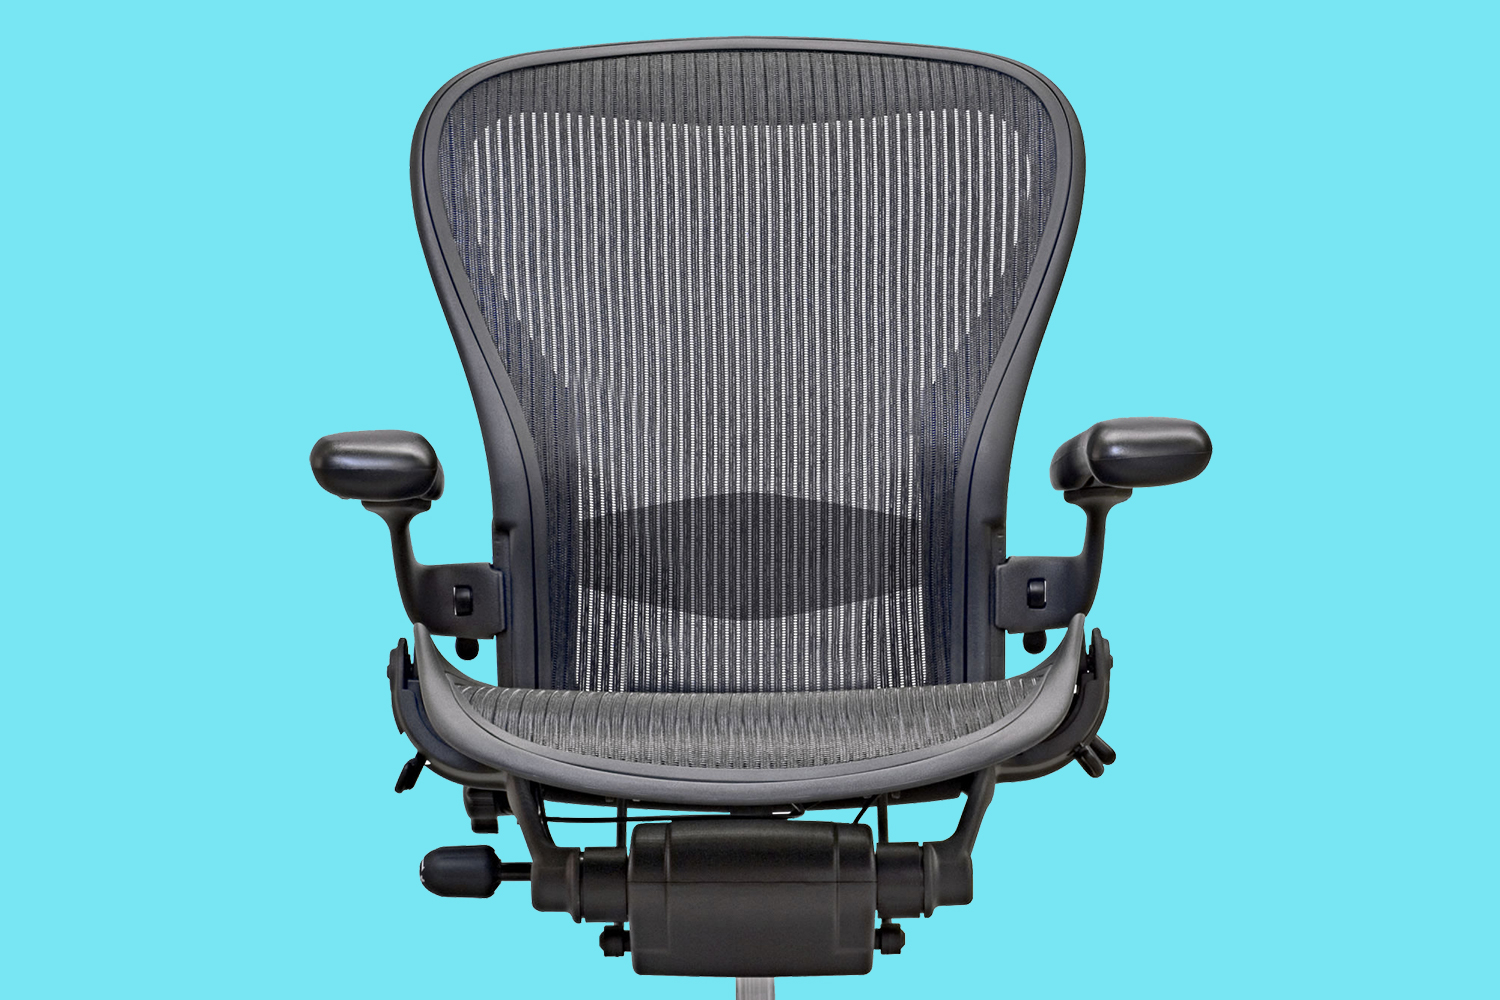 Herman Miller Aeron Office Chairs Are Over 500 Off Insidehook